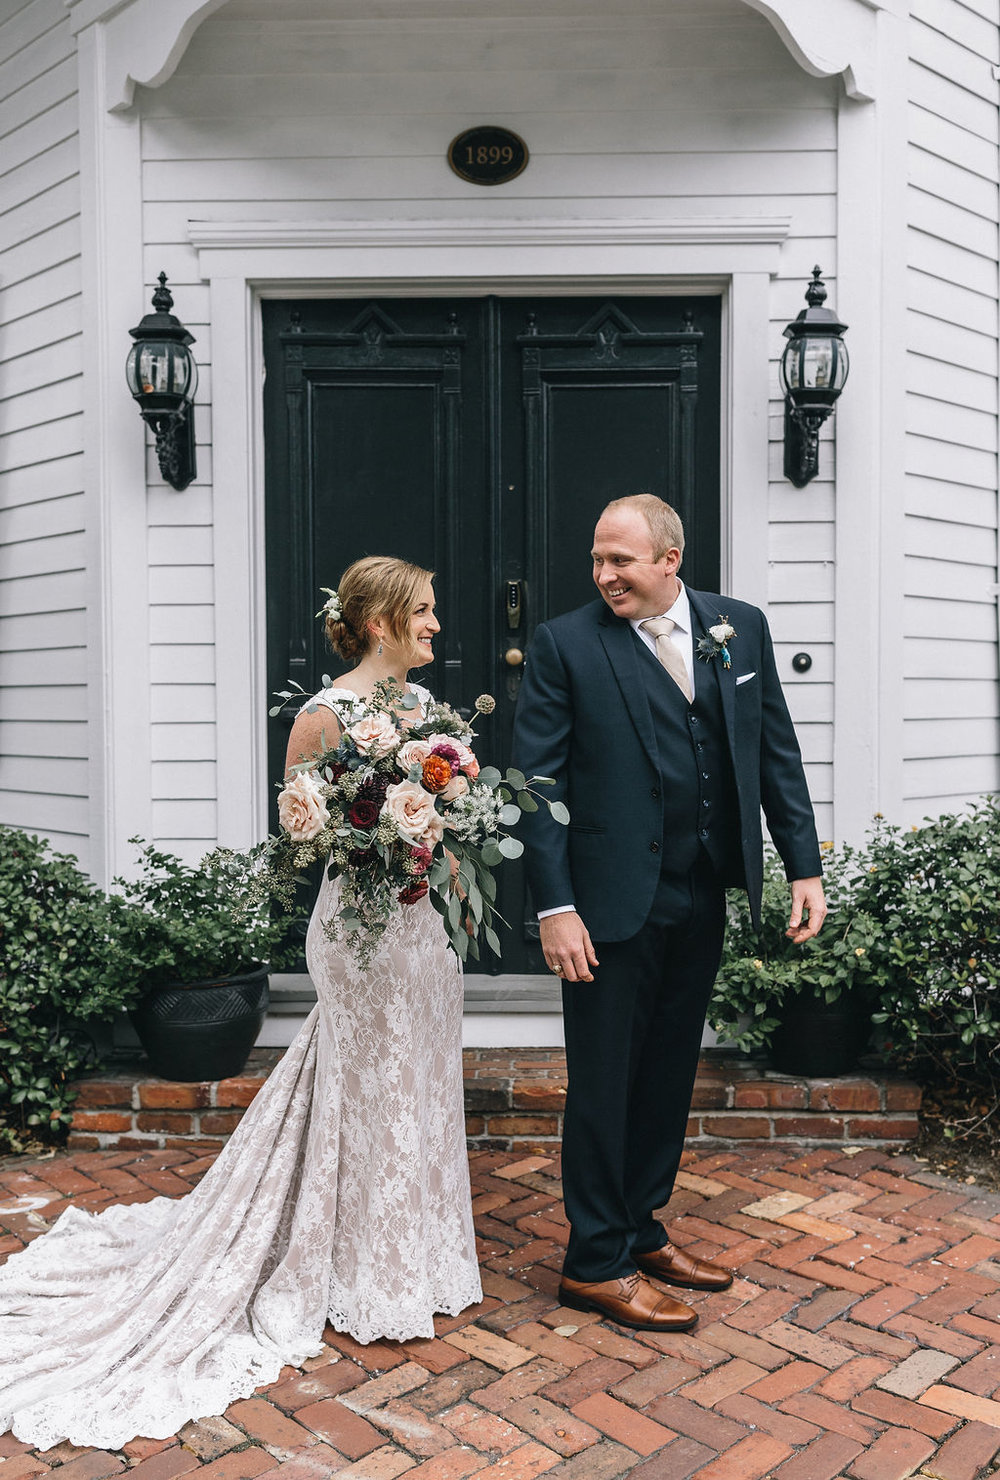 ivory_and_beau_savannah_bridal_shop_ivory_and_beau_couple_regan_and_brian_mackensey_alexander_photography_charles_h_morris_center_wedding_savannah_wedding_planner_savannah_florist_10.jpg